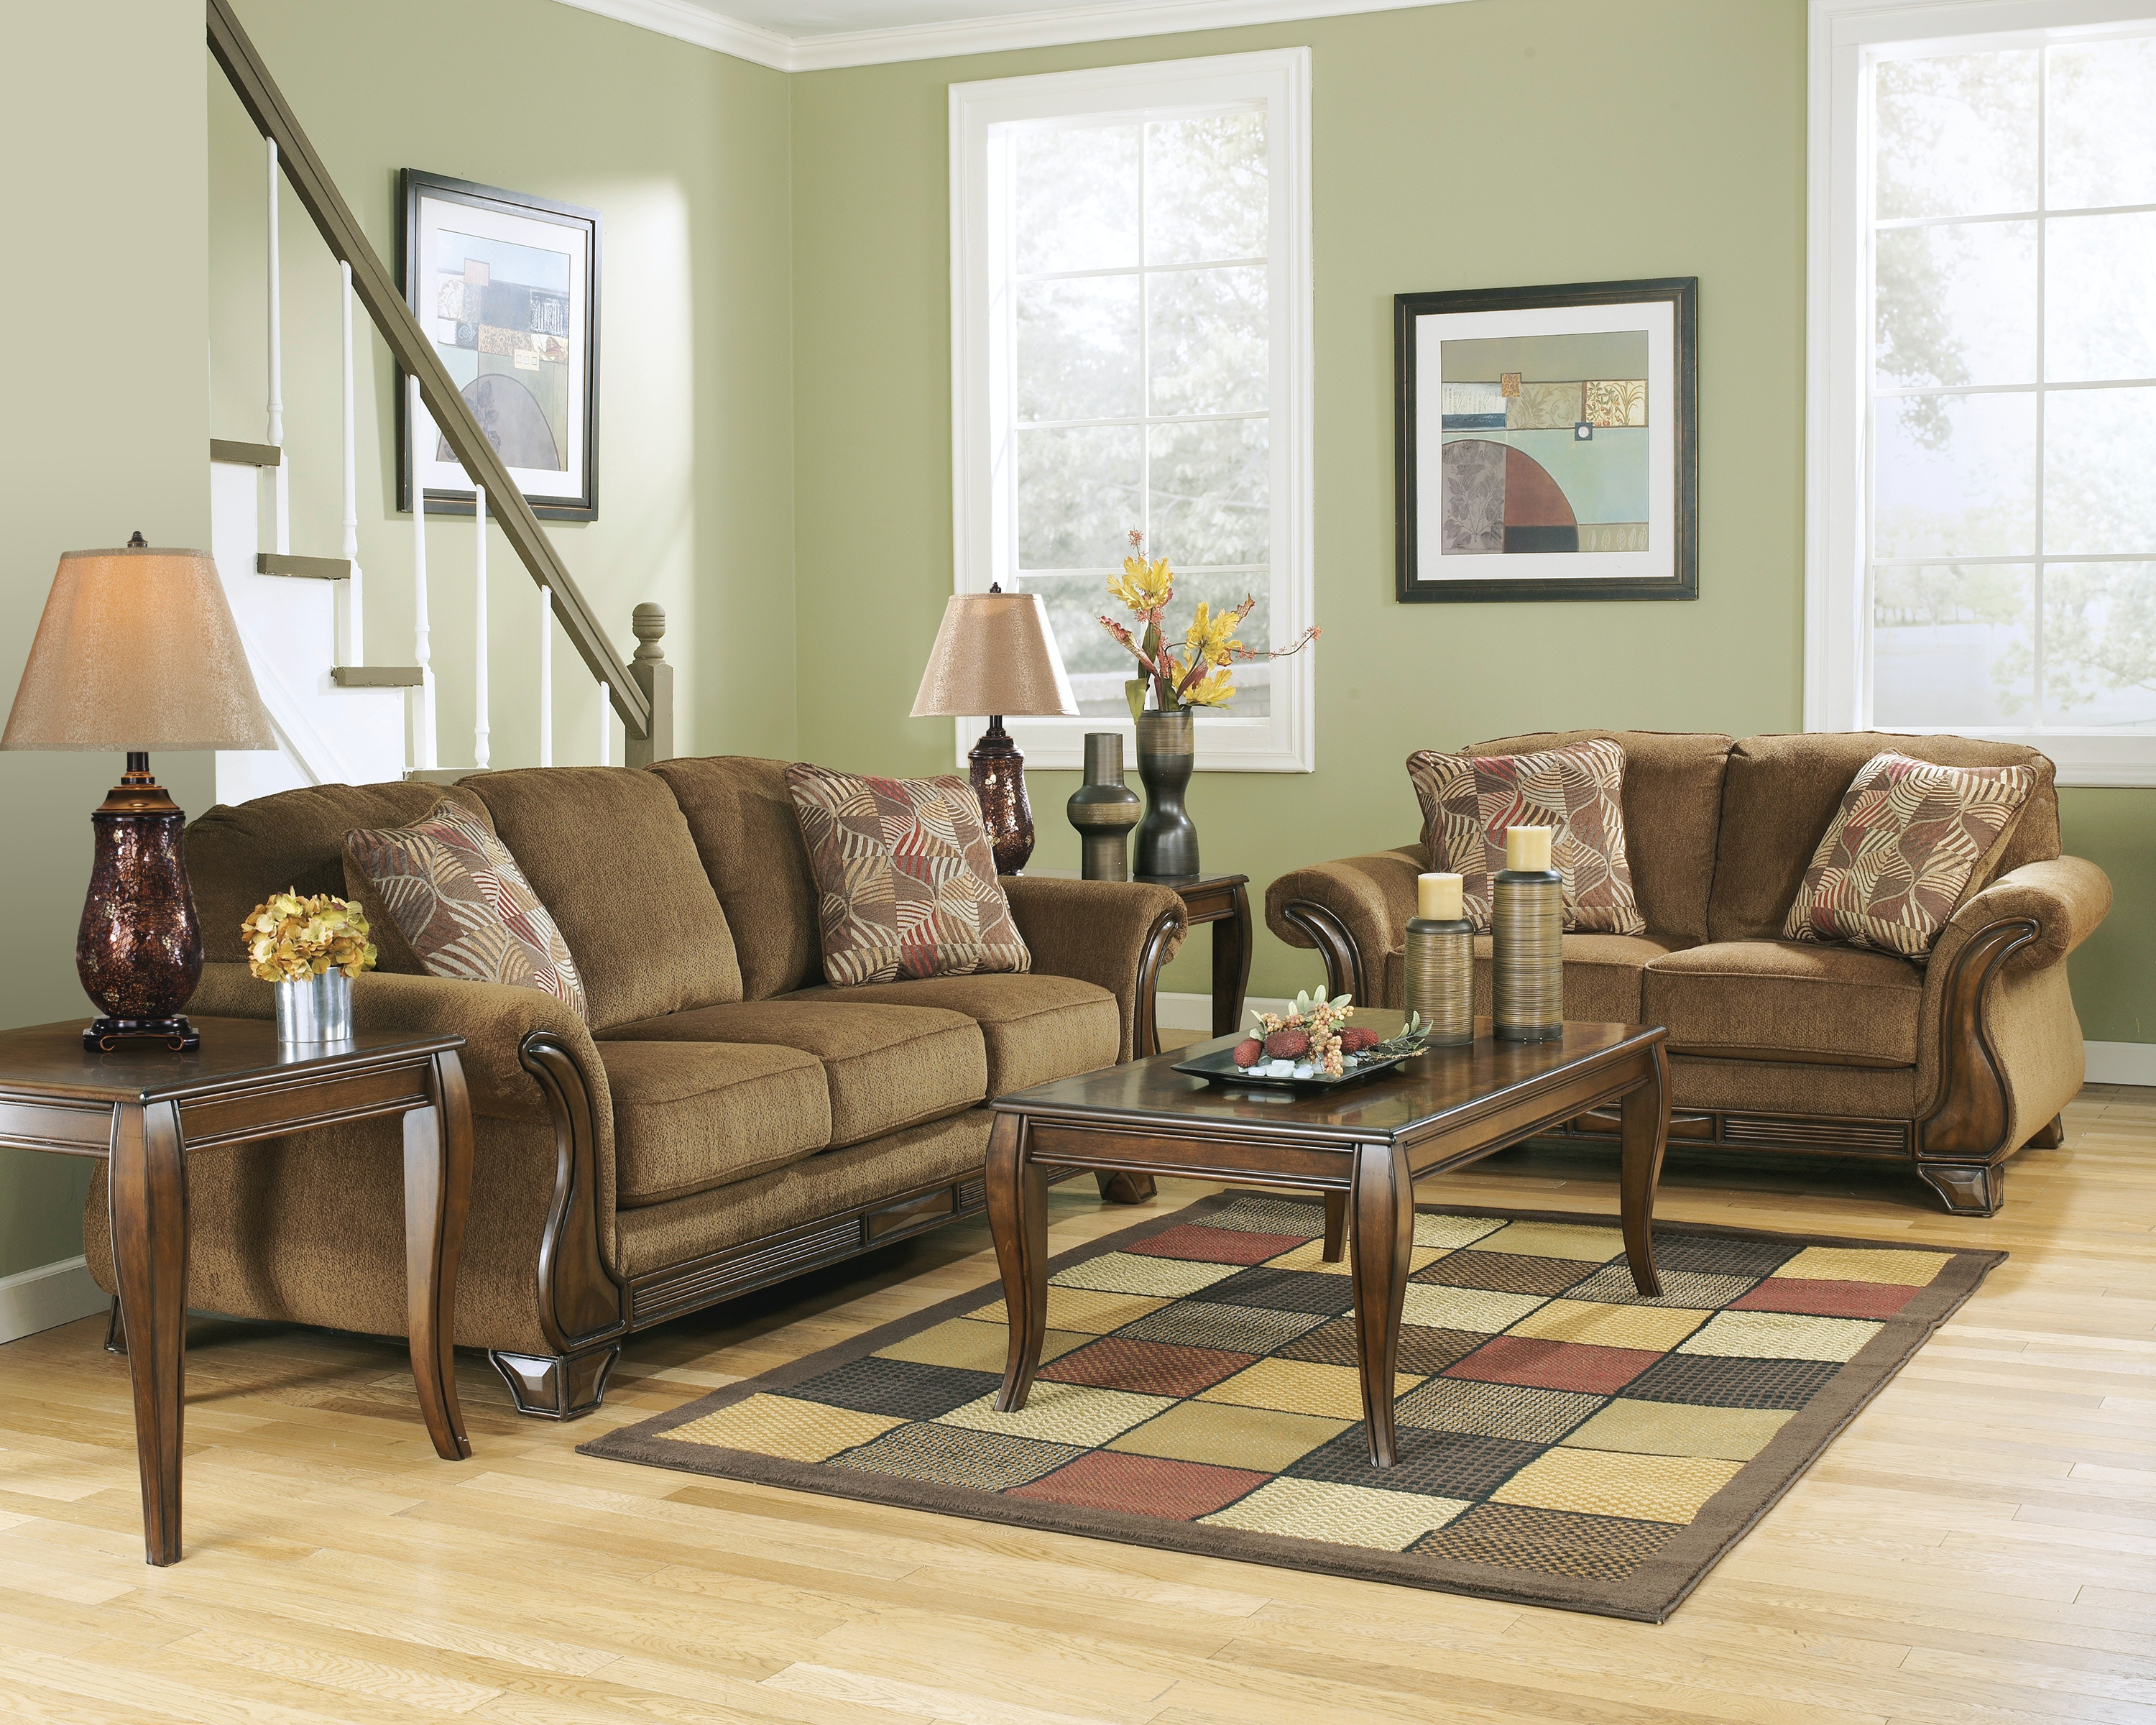 Signature Design By Ashley 5pc Montgomery Wood Trim Sofa, Loveseat And 3pc  Table Set 38300